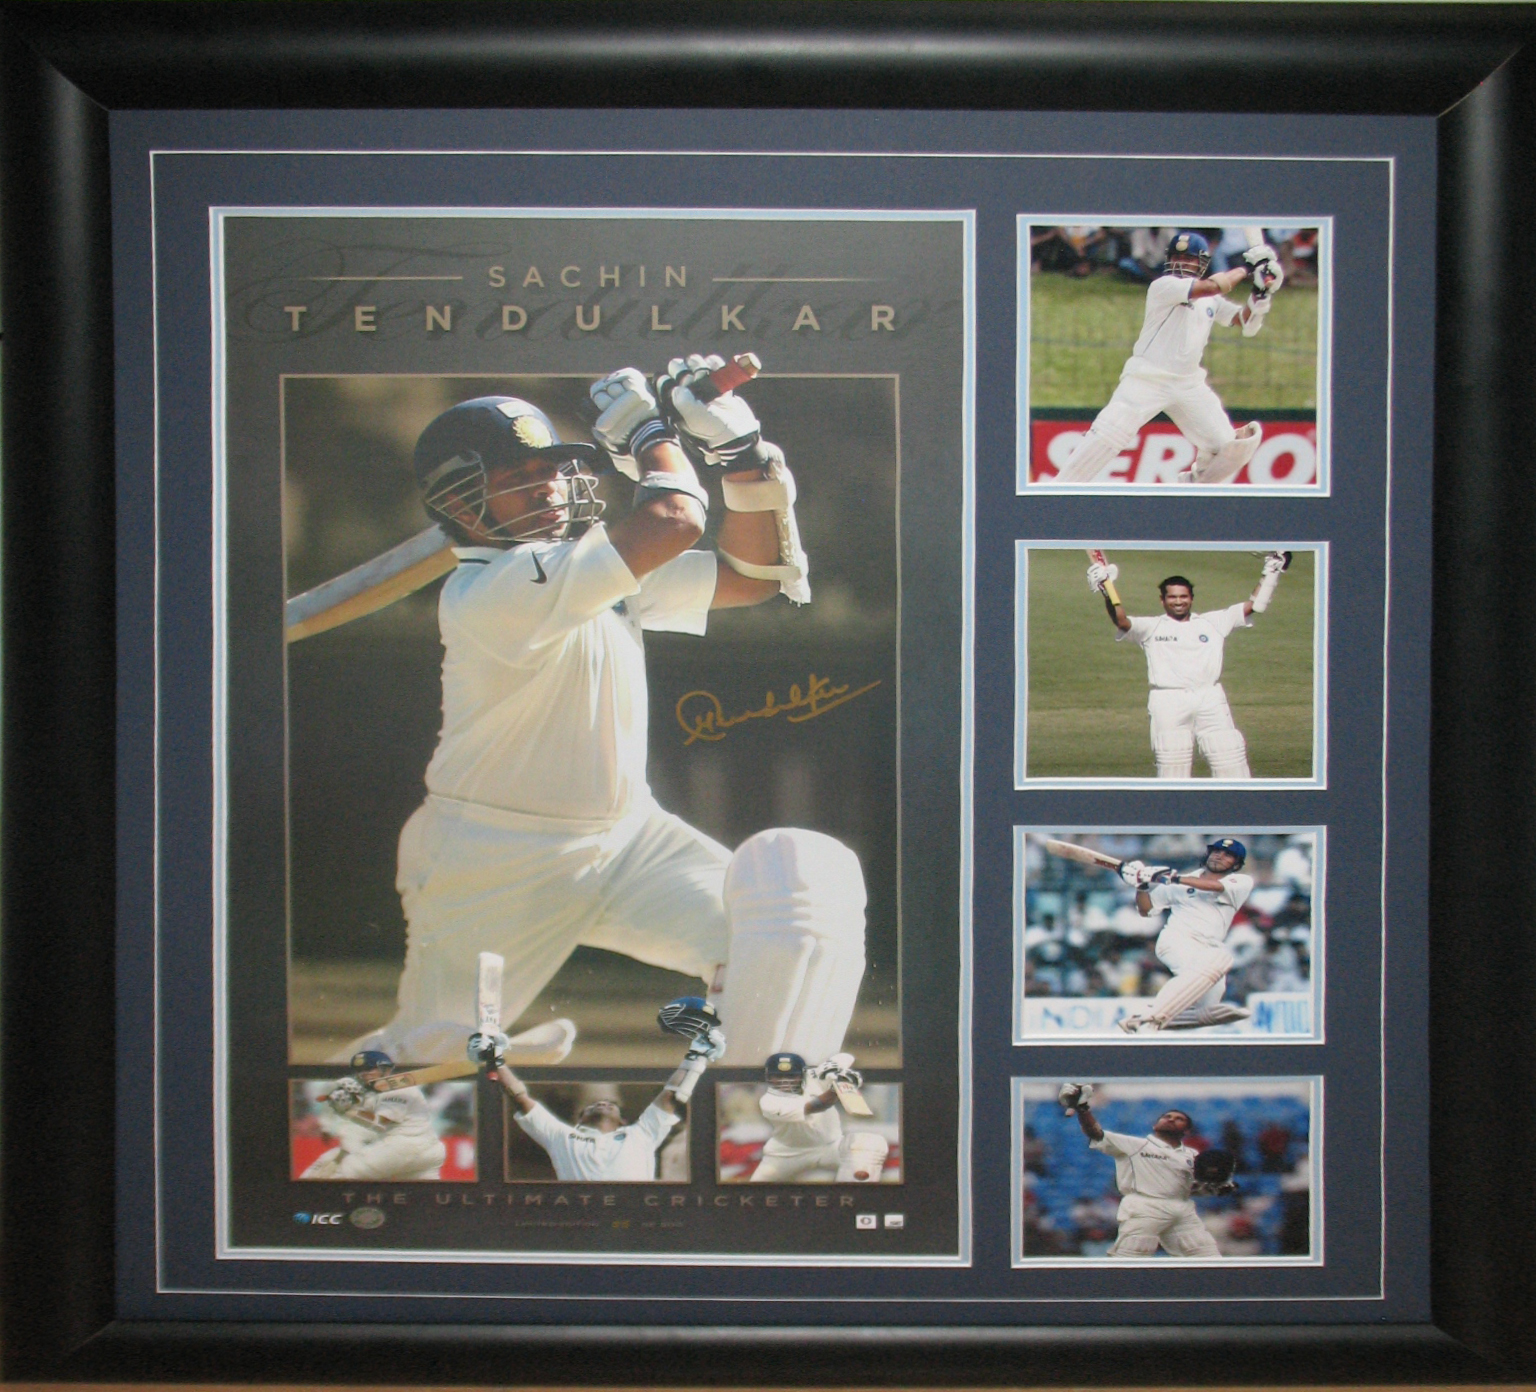 cricket154-the-ultimate-cricketer-sachi-1390468317-jpg